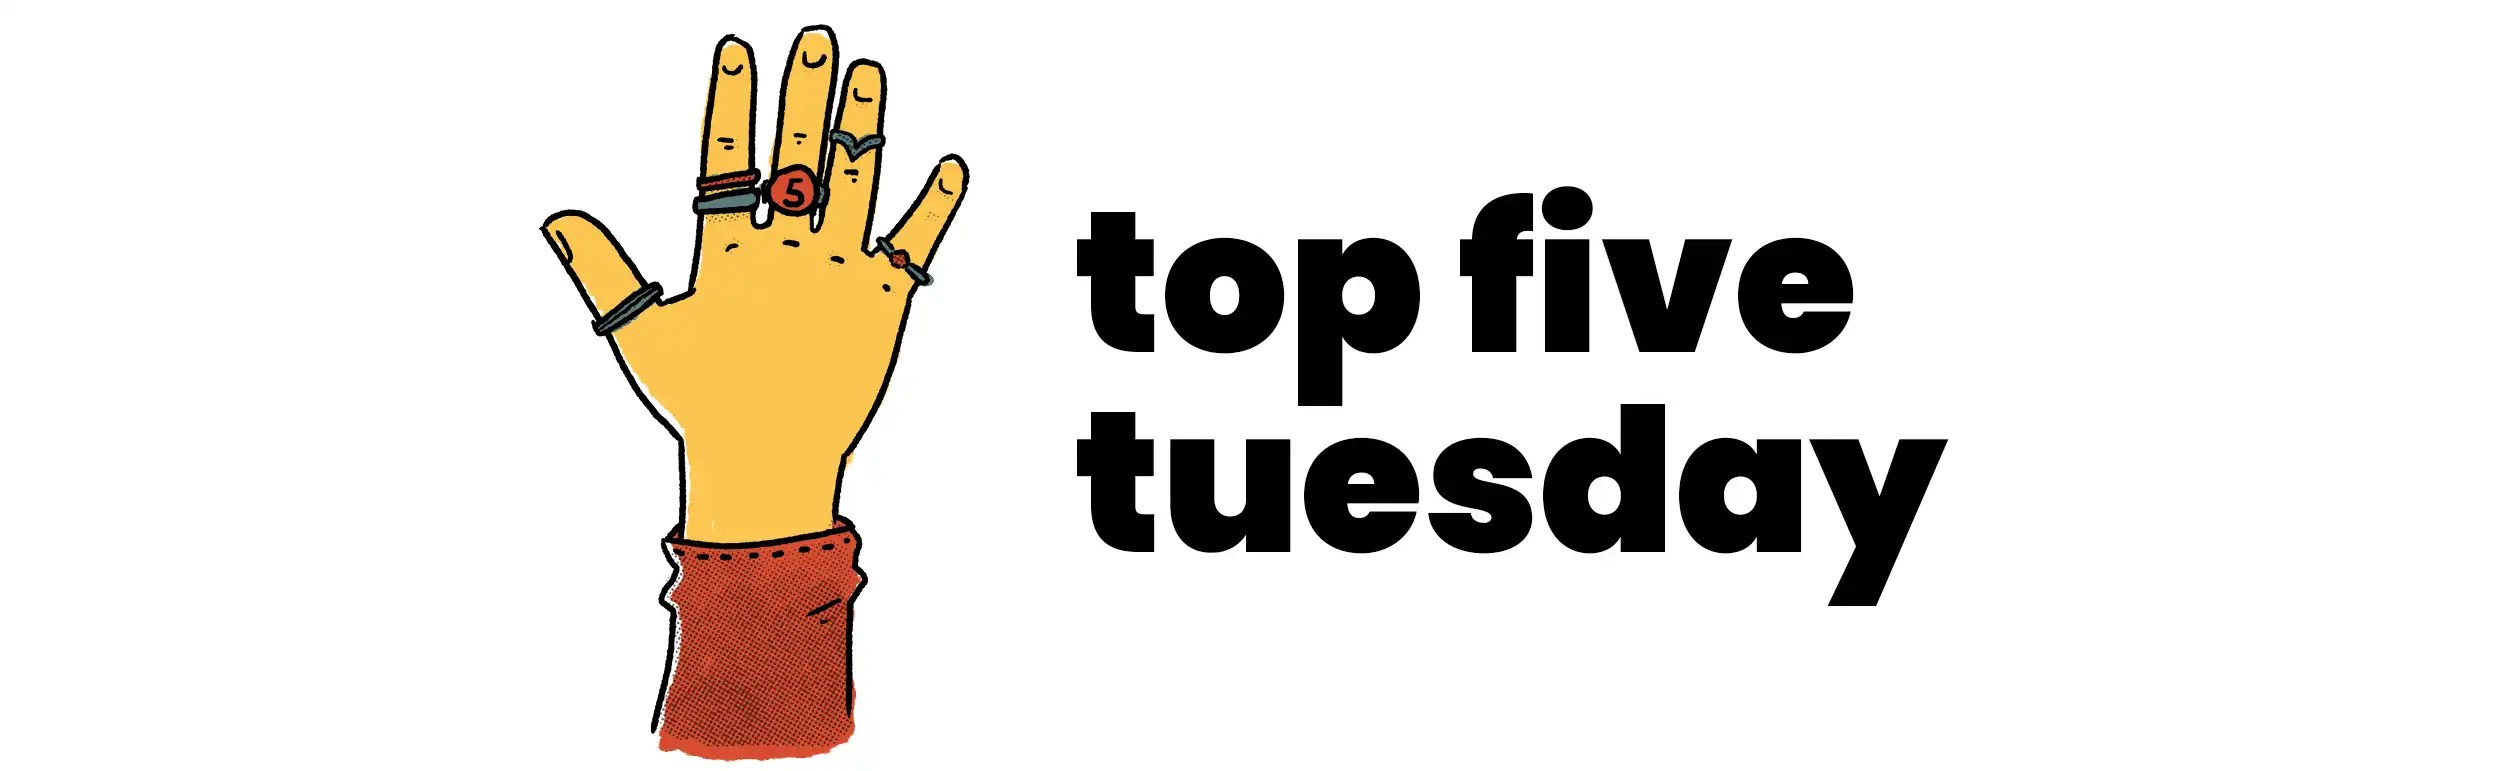 Top 5 Tuesday banner displaying a hand with five rings